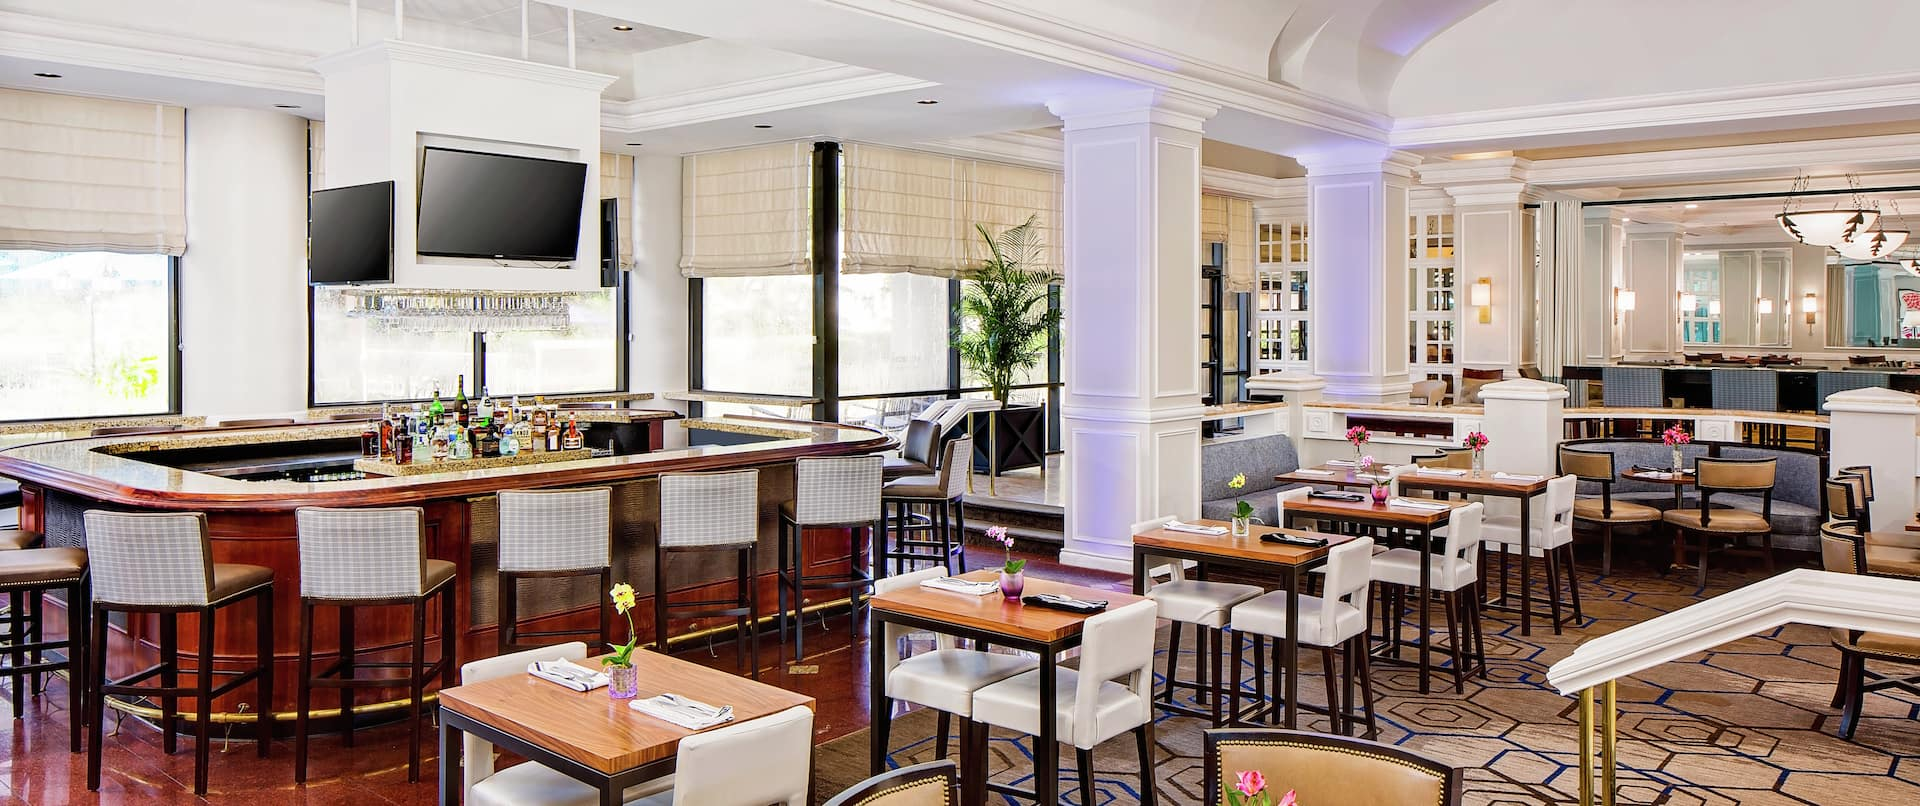 Restaurant Dining Area with Chairs, Tables, Bar Counter and Bar Stools